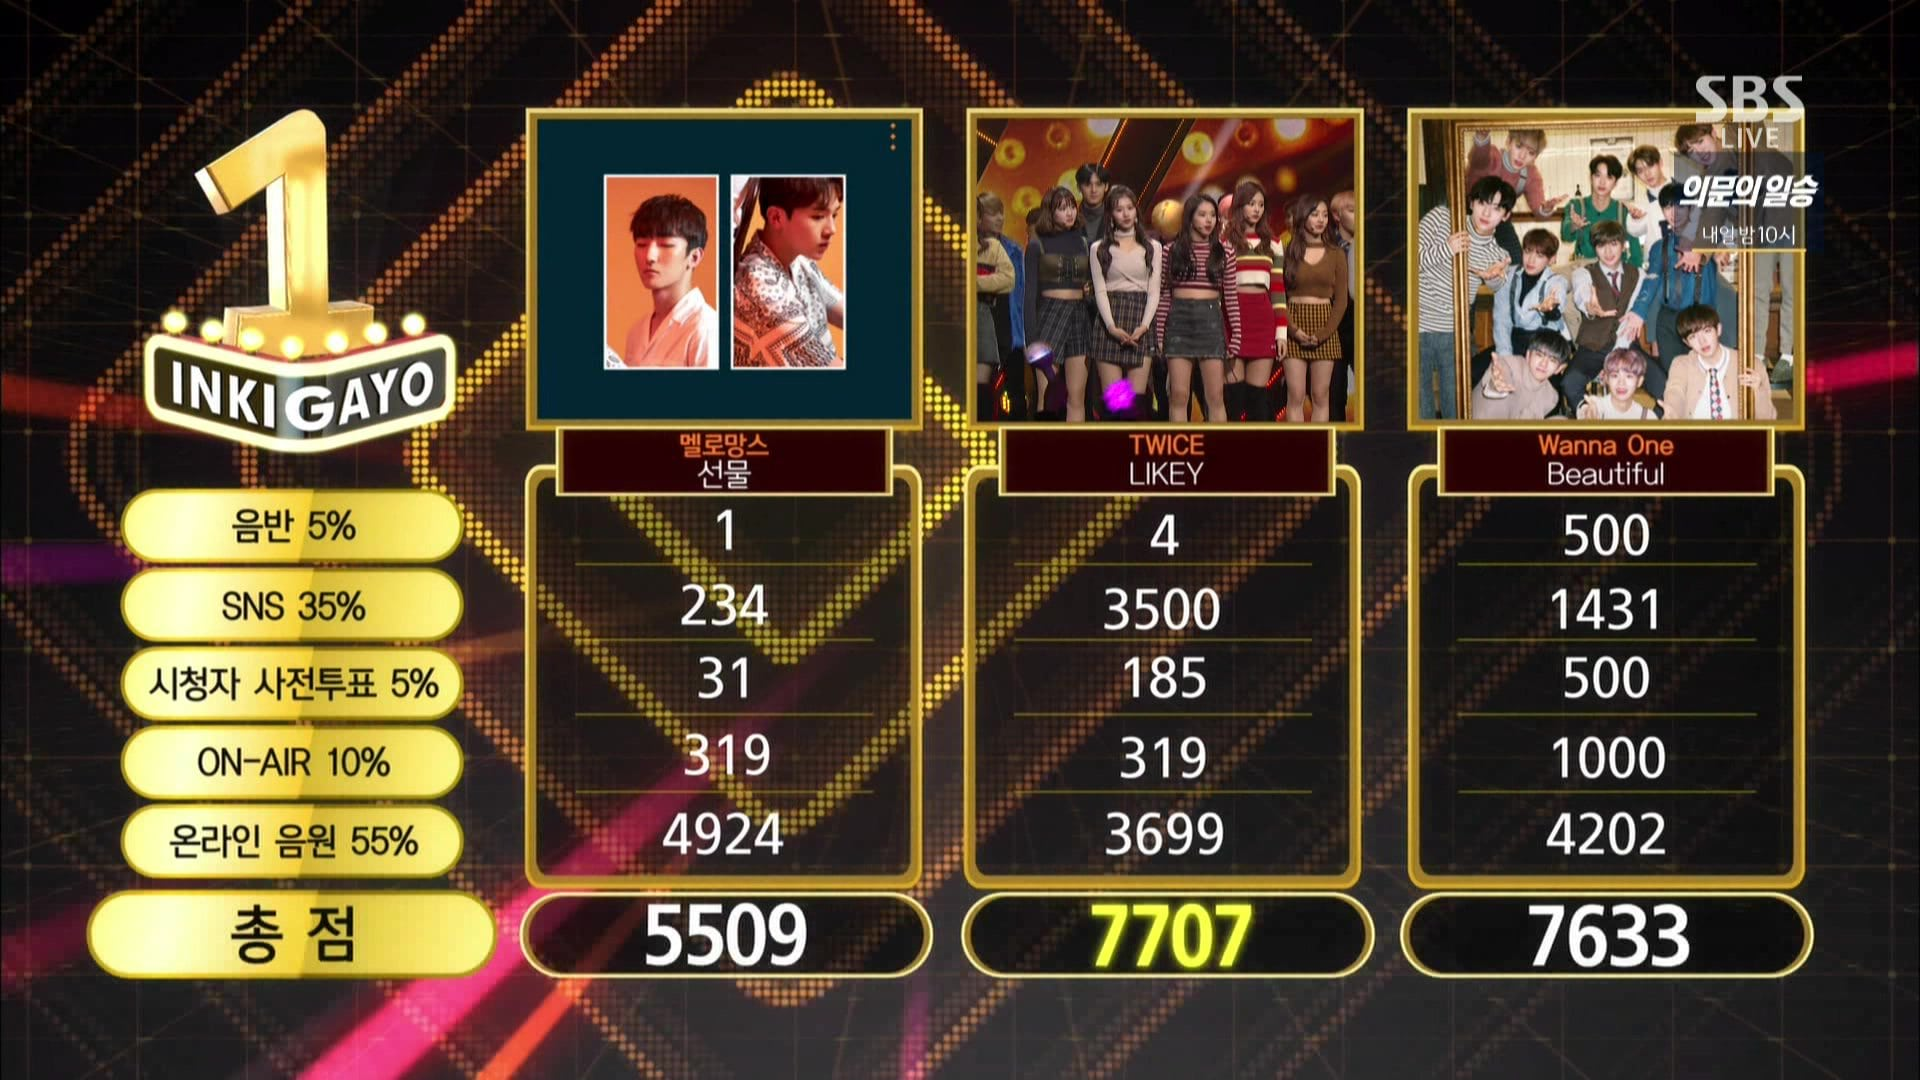 """Watch: TWICE Takes 7th Win For """"Likey"""" On """"Inkigayo""""; Performances By KARD, SEVENTEEN, Red Velvet, And More!"""